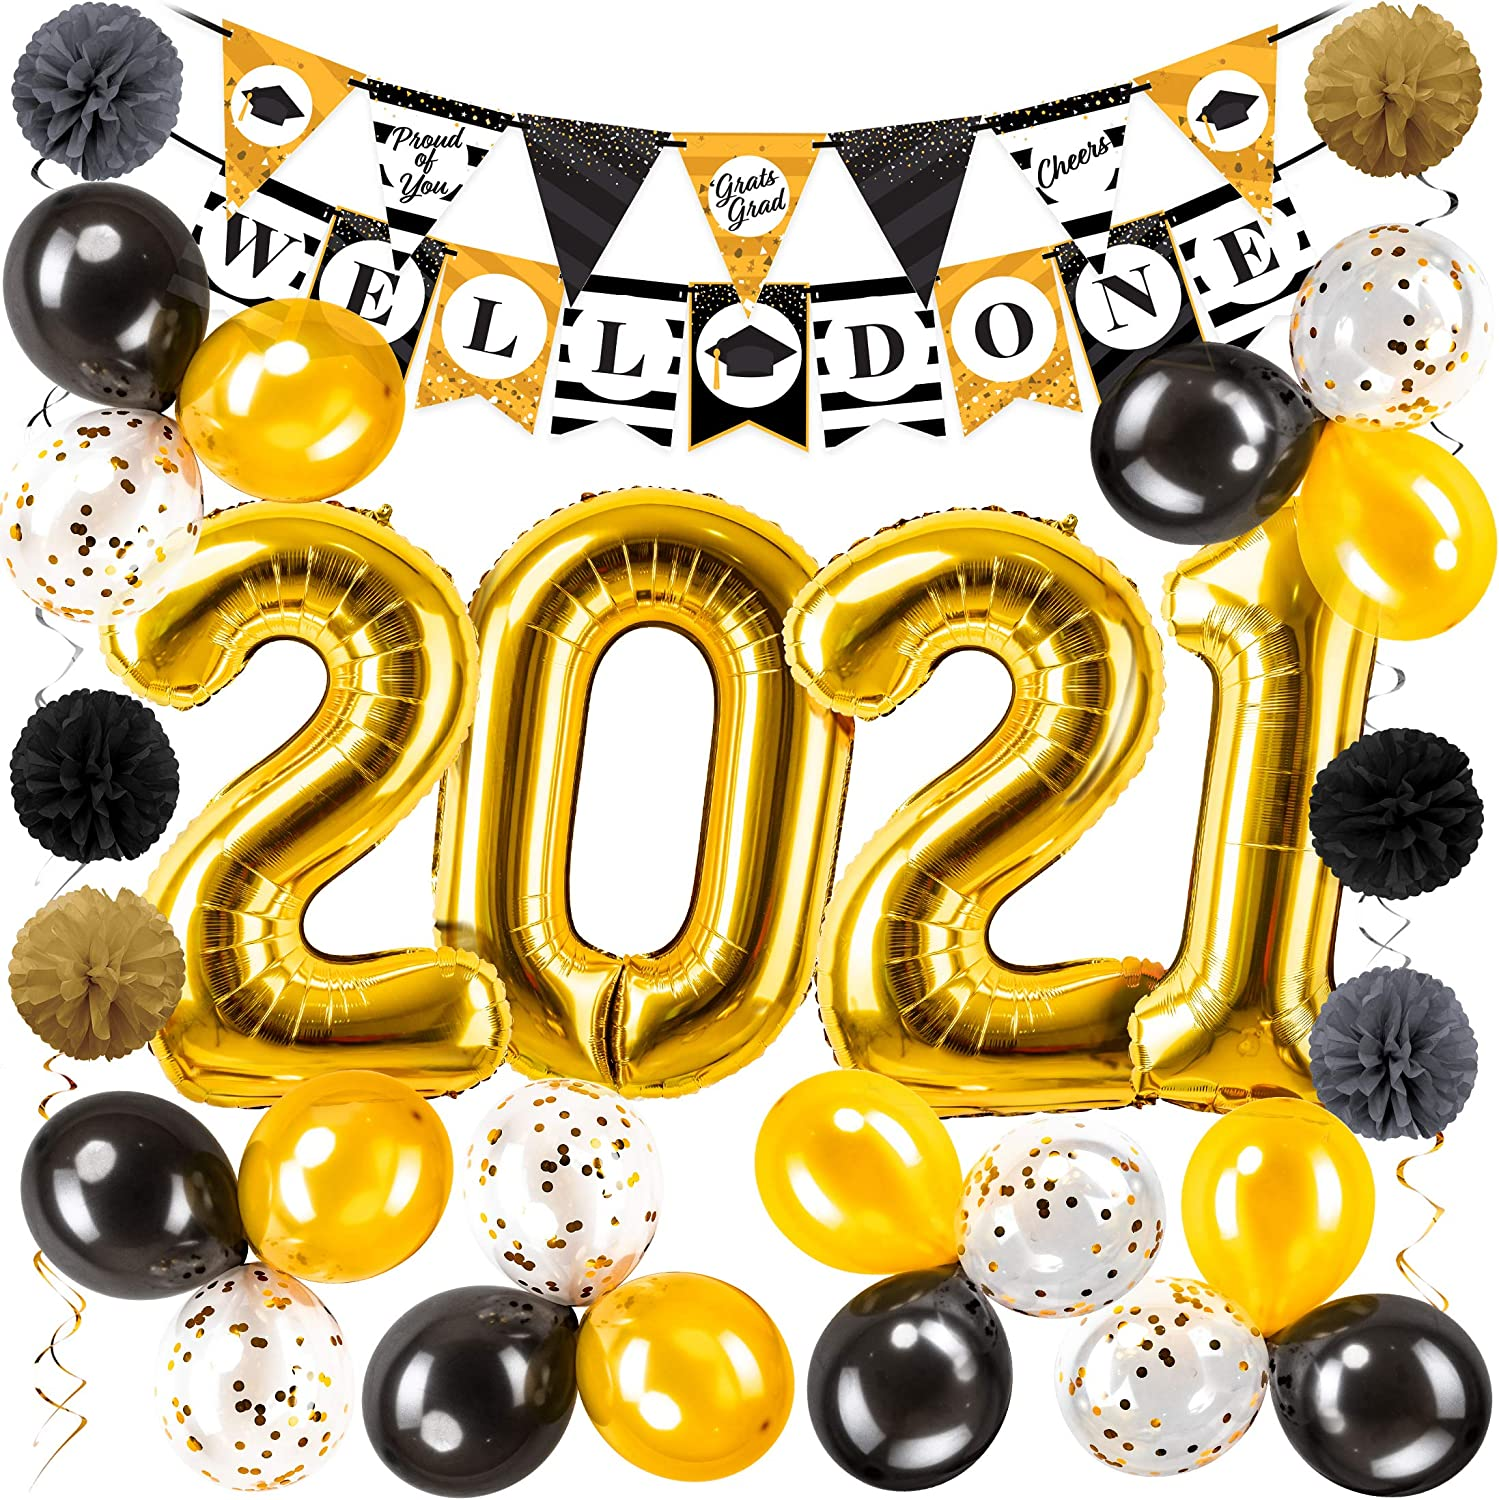 Graduation Decorations 2021 Kit - 45pc - Black & Gold Graduation Party Supplies 2021 Balloons, Props, Banner, PomPoms, Swirls Decor - Full 2021 Grad Party Value Pack for the Graduate